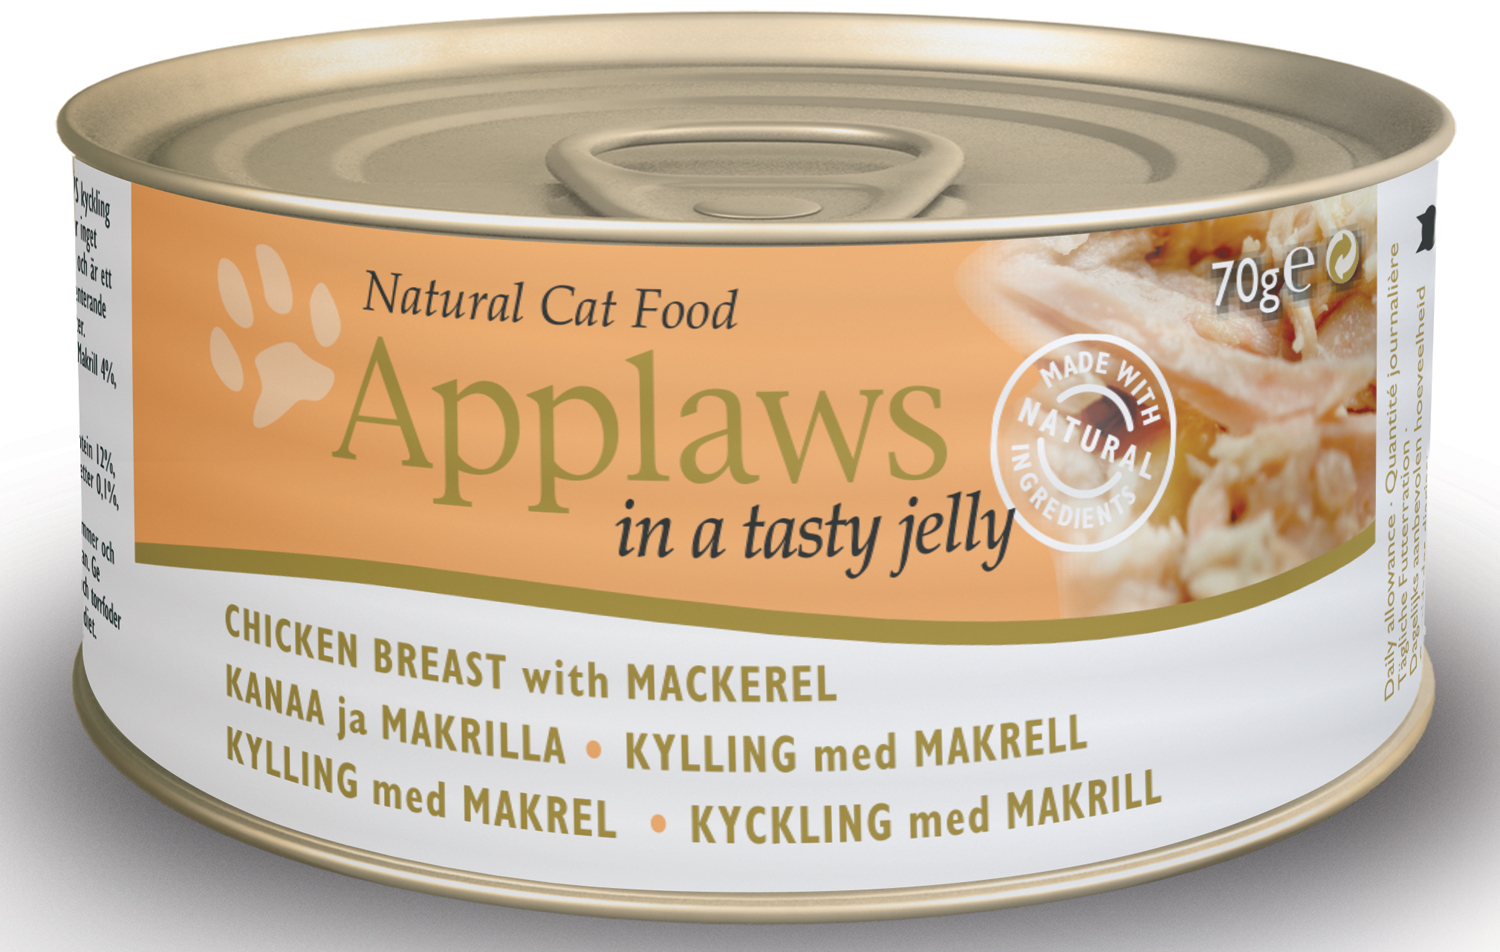 Applaws Natural Chicken Breast with Mackerel Cat Food